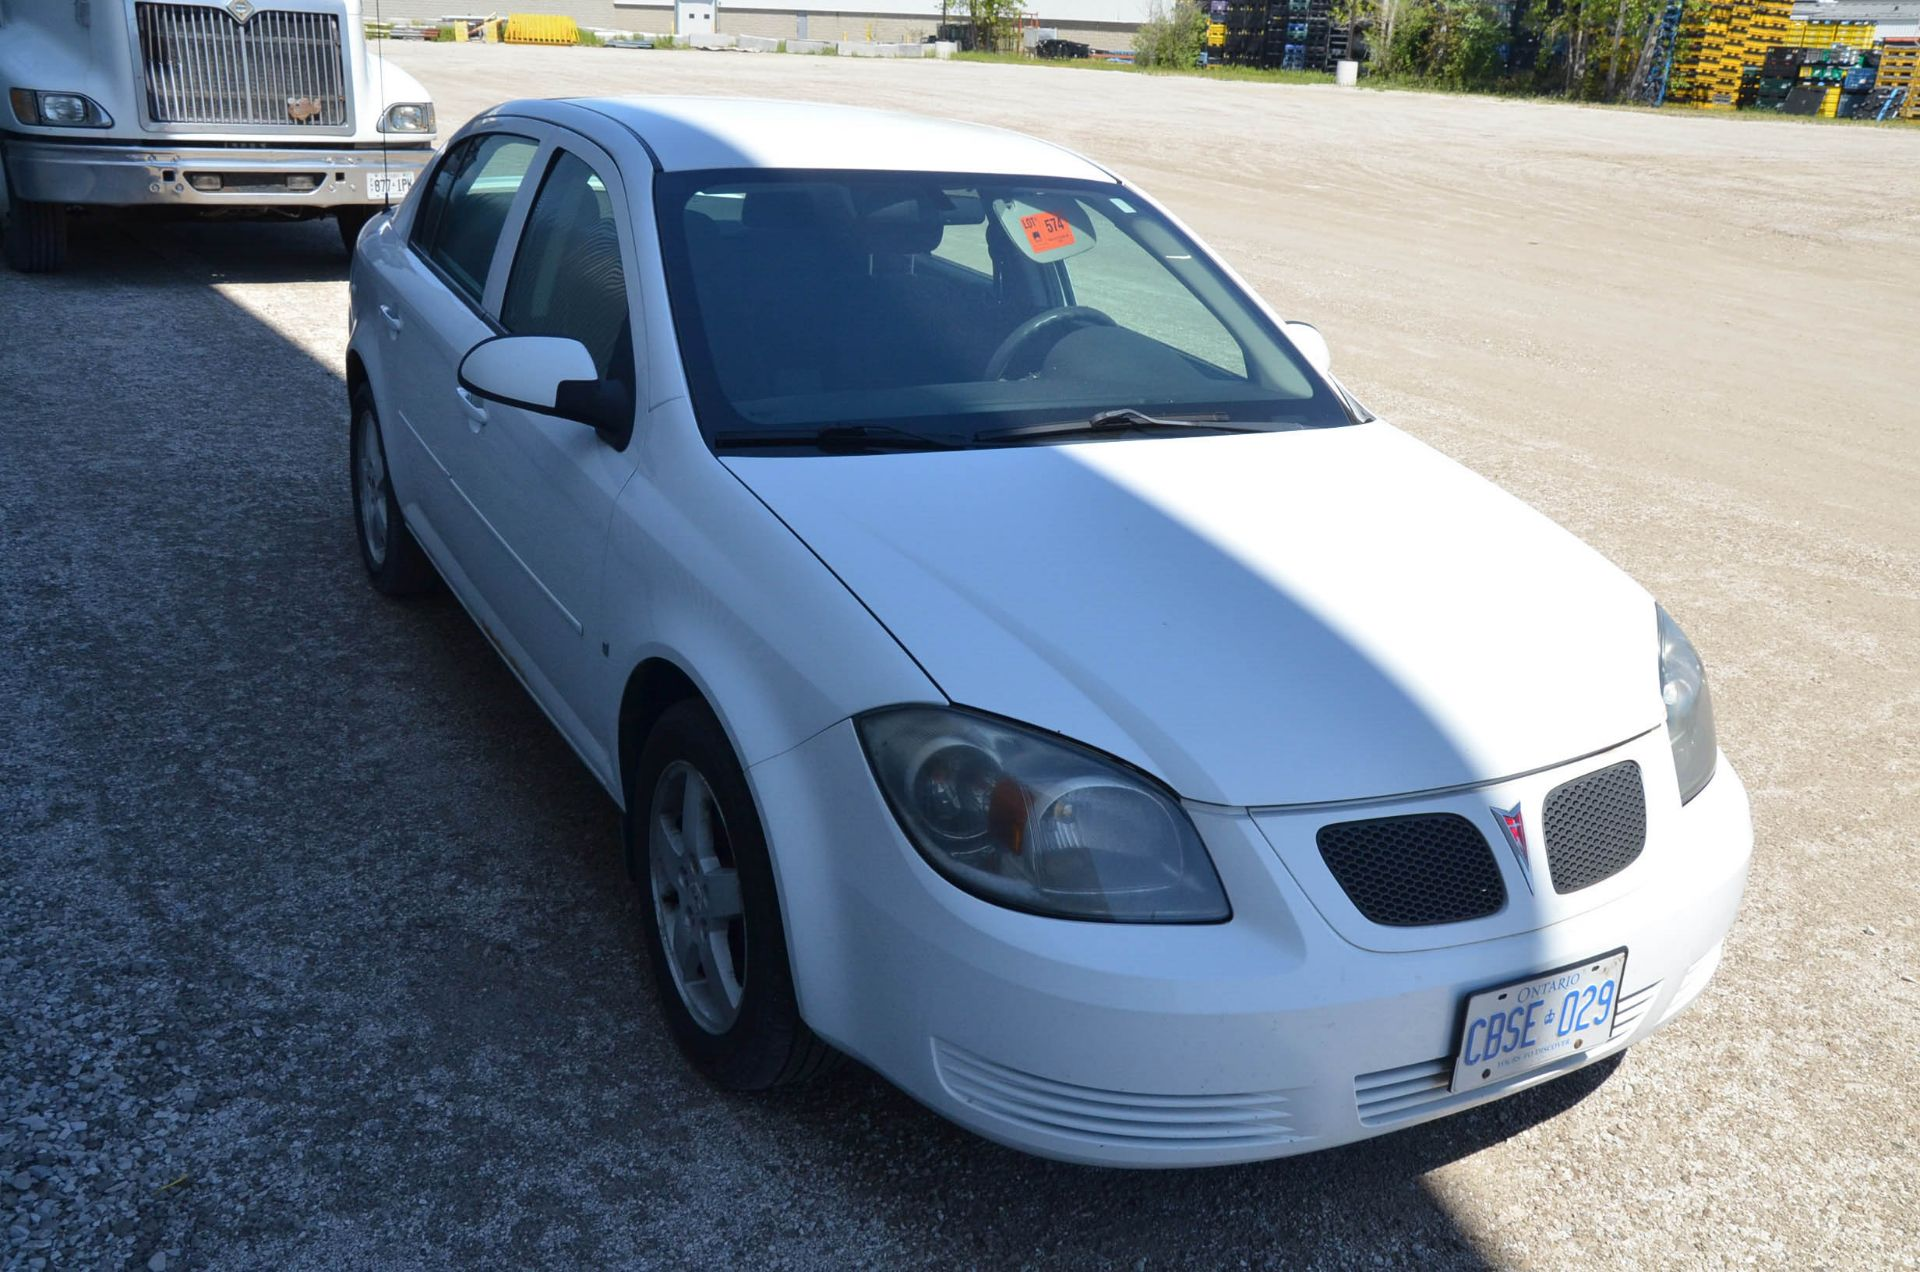 PONTIAC (2008) G5 4-DOOR SEDAN, AUTO, APPROX. 192,000 KM (RECORDED ON METER AT THE TIME OF LISTING), - Image 5 of 9